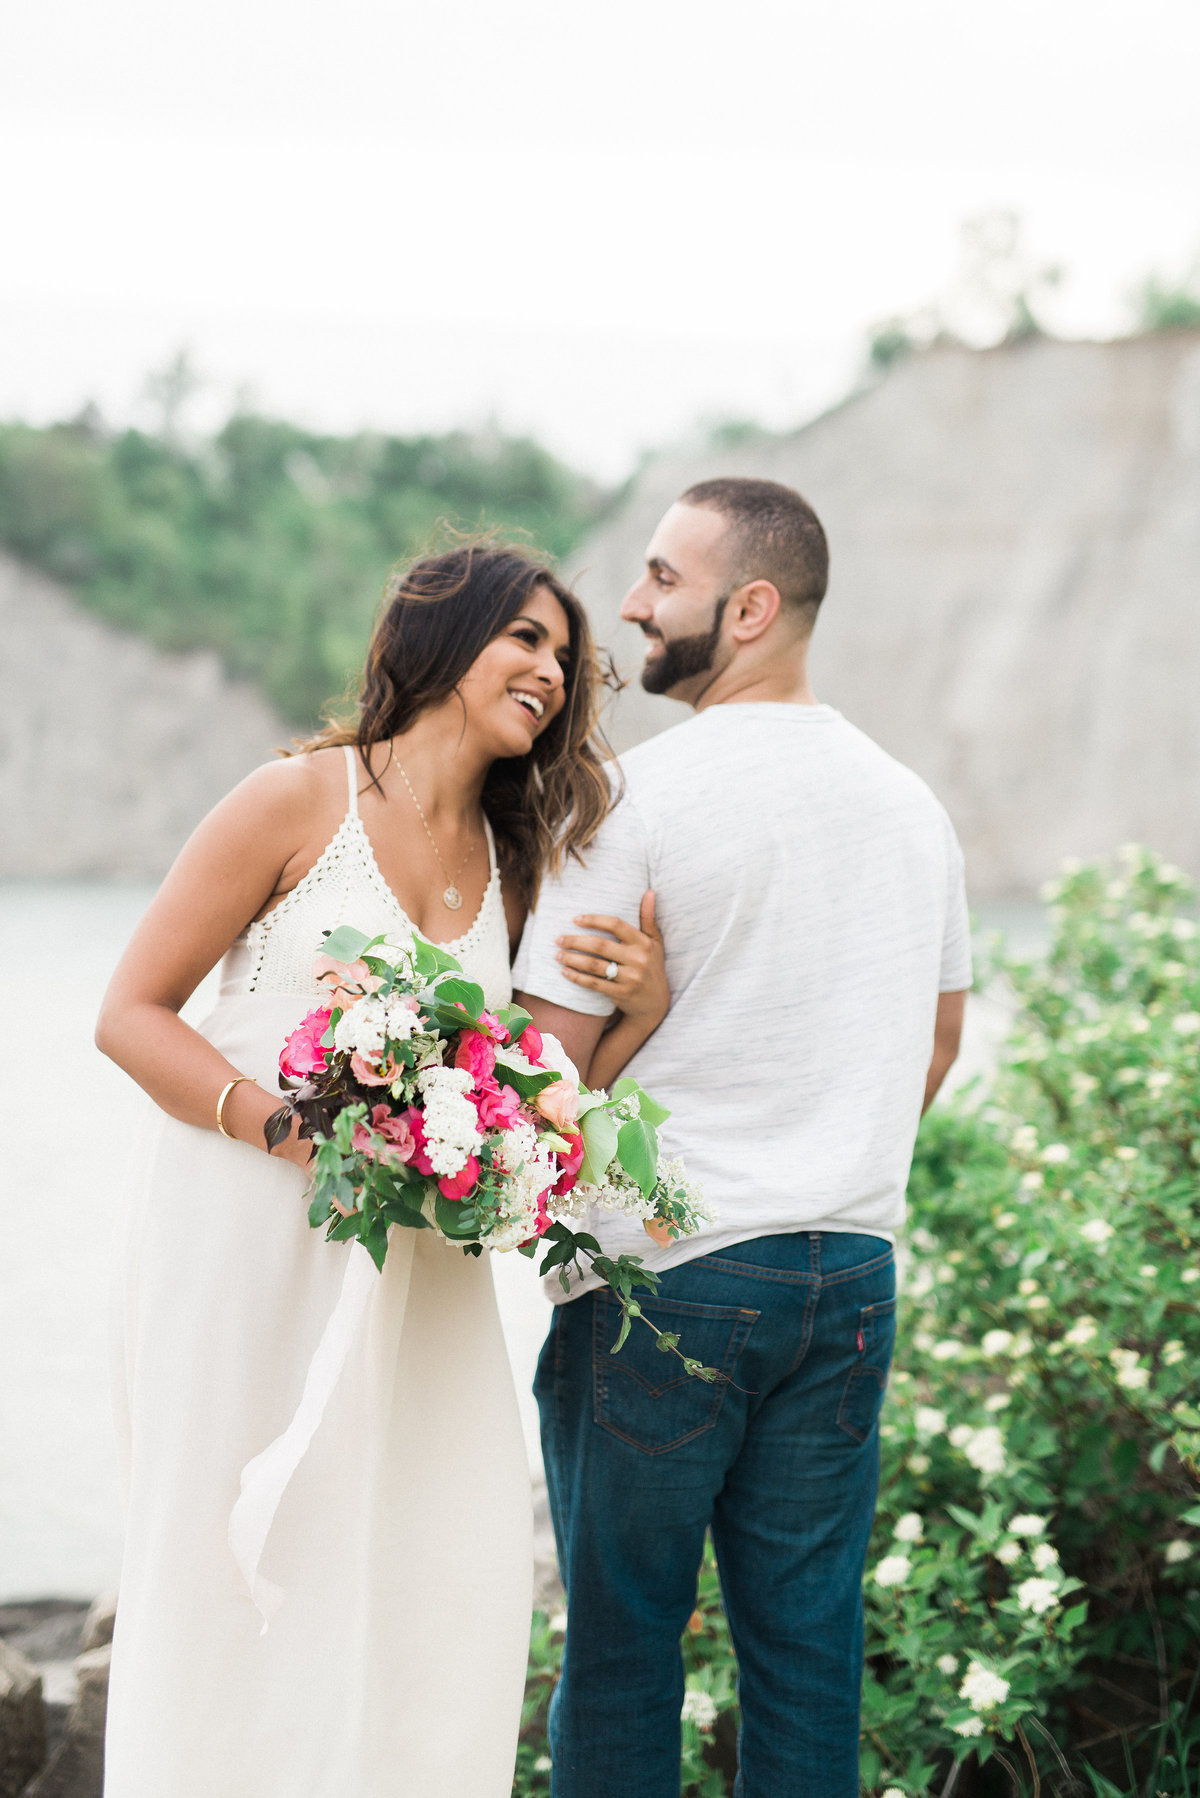 Destiny Dawn Photography is a fine art Wedding Photographer who did engagement photography at the Scarborough Bluffs